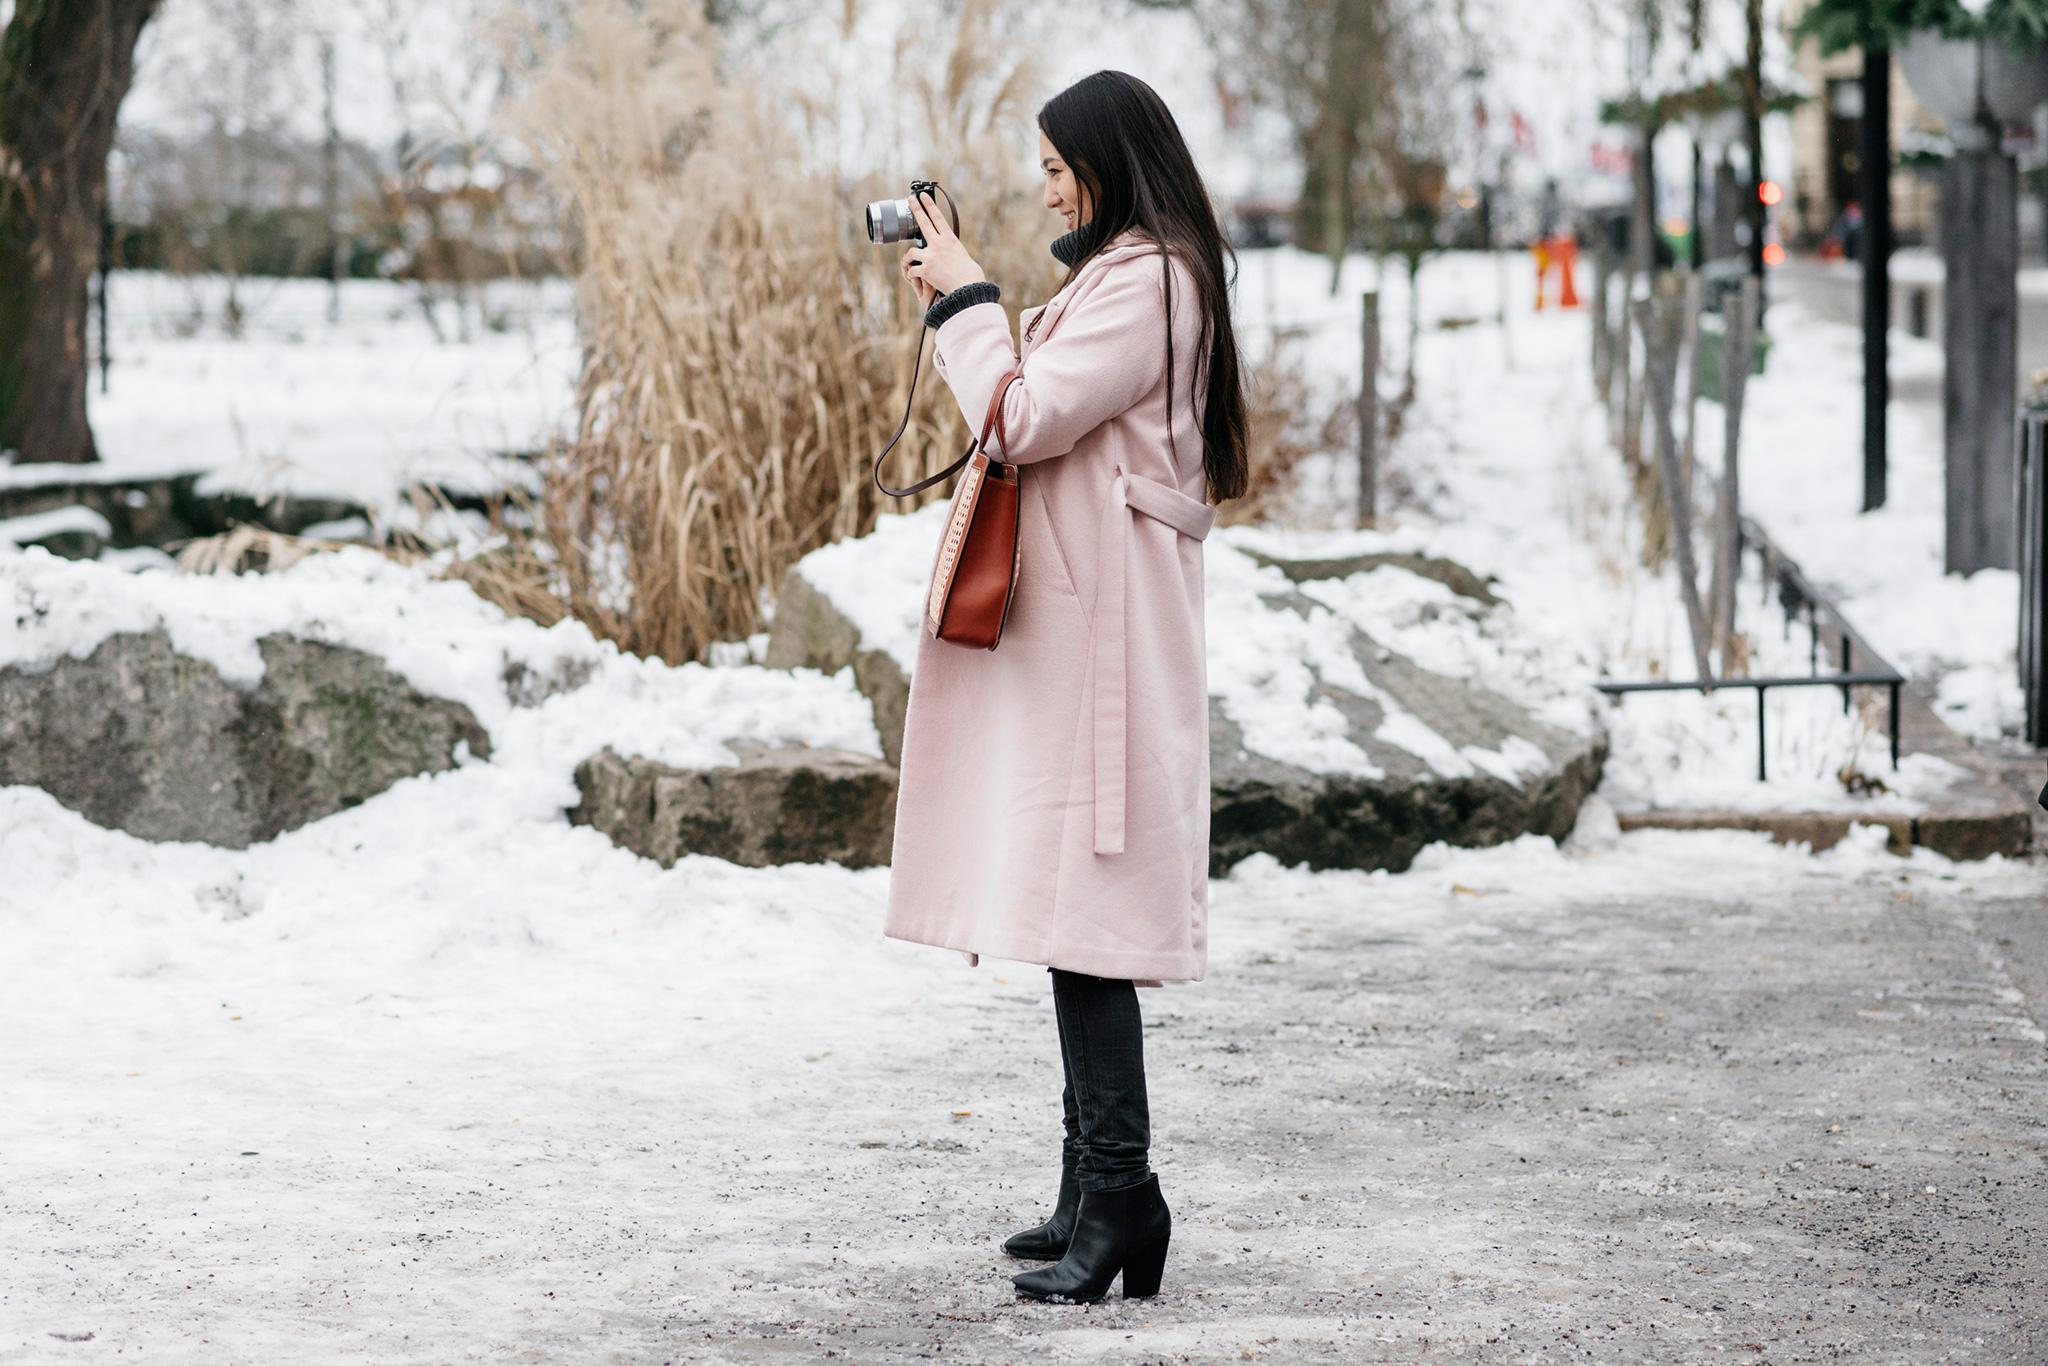 When it comes to simple, ladylike outerwear, you can't go wrong with a pink overcoat. http://t.co/QjNPO0eN8s http://t.co/2JZYE5OVOr